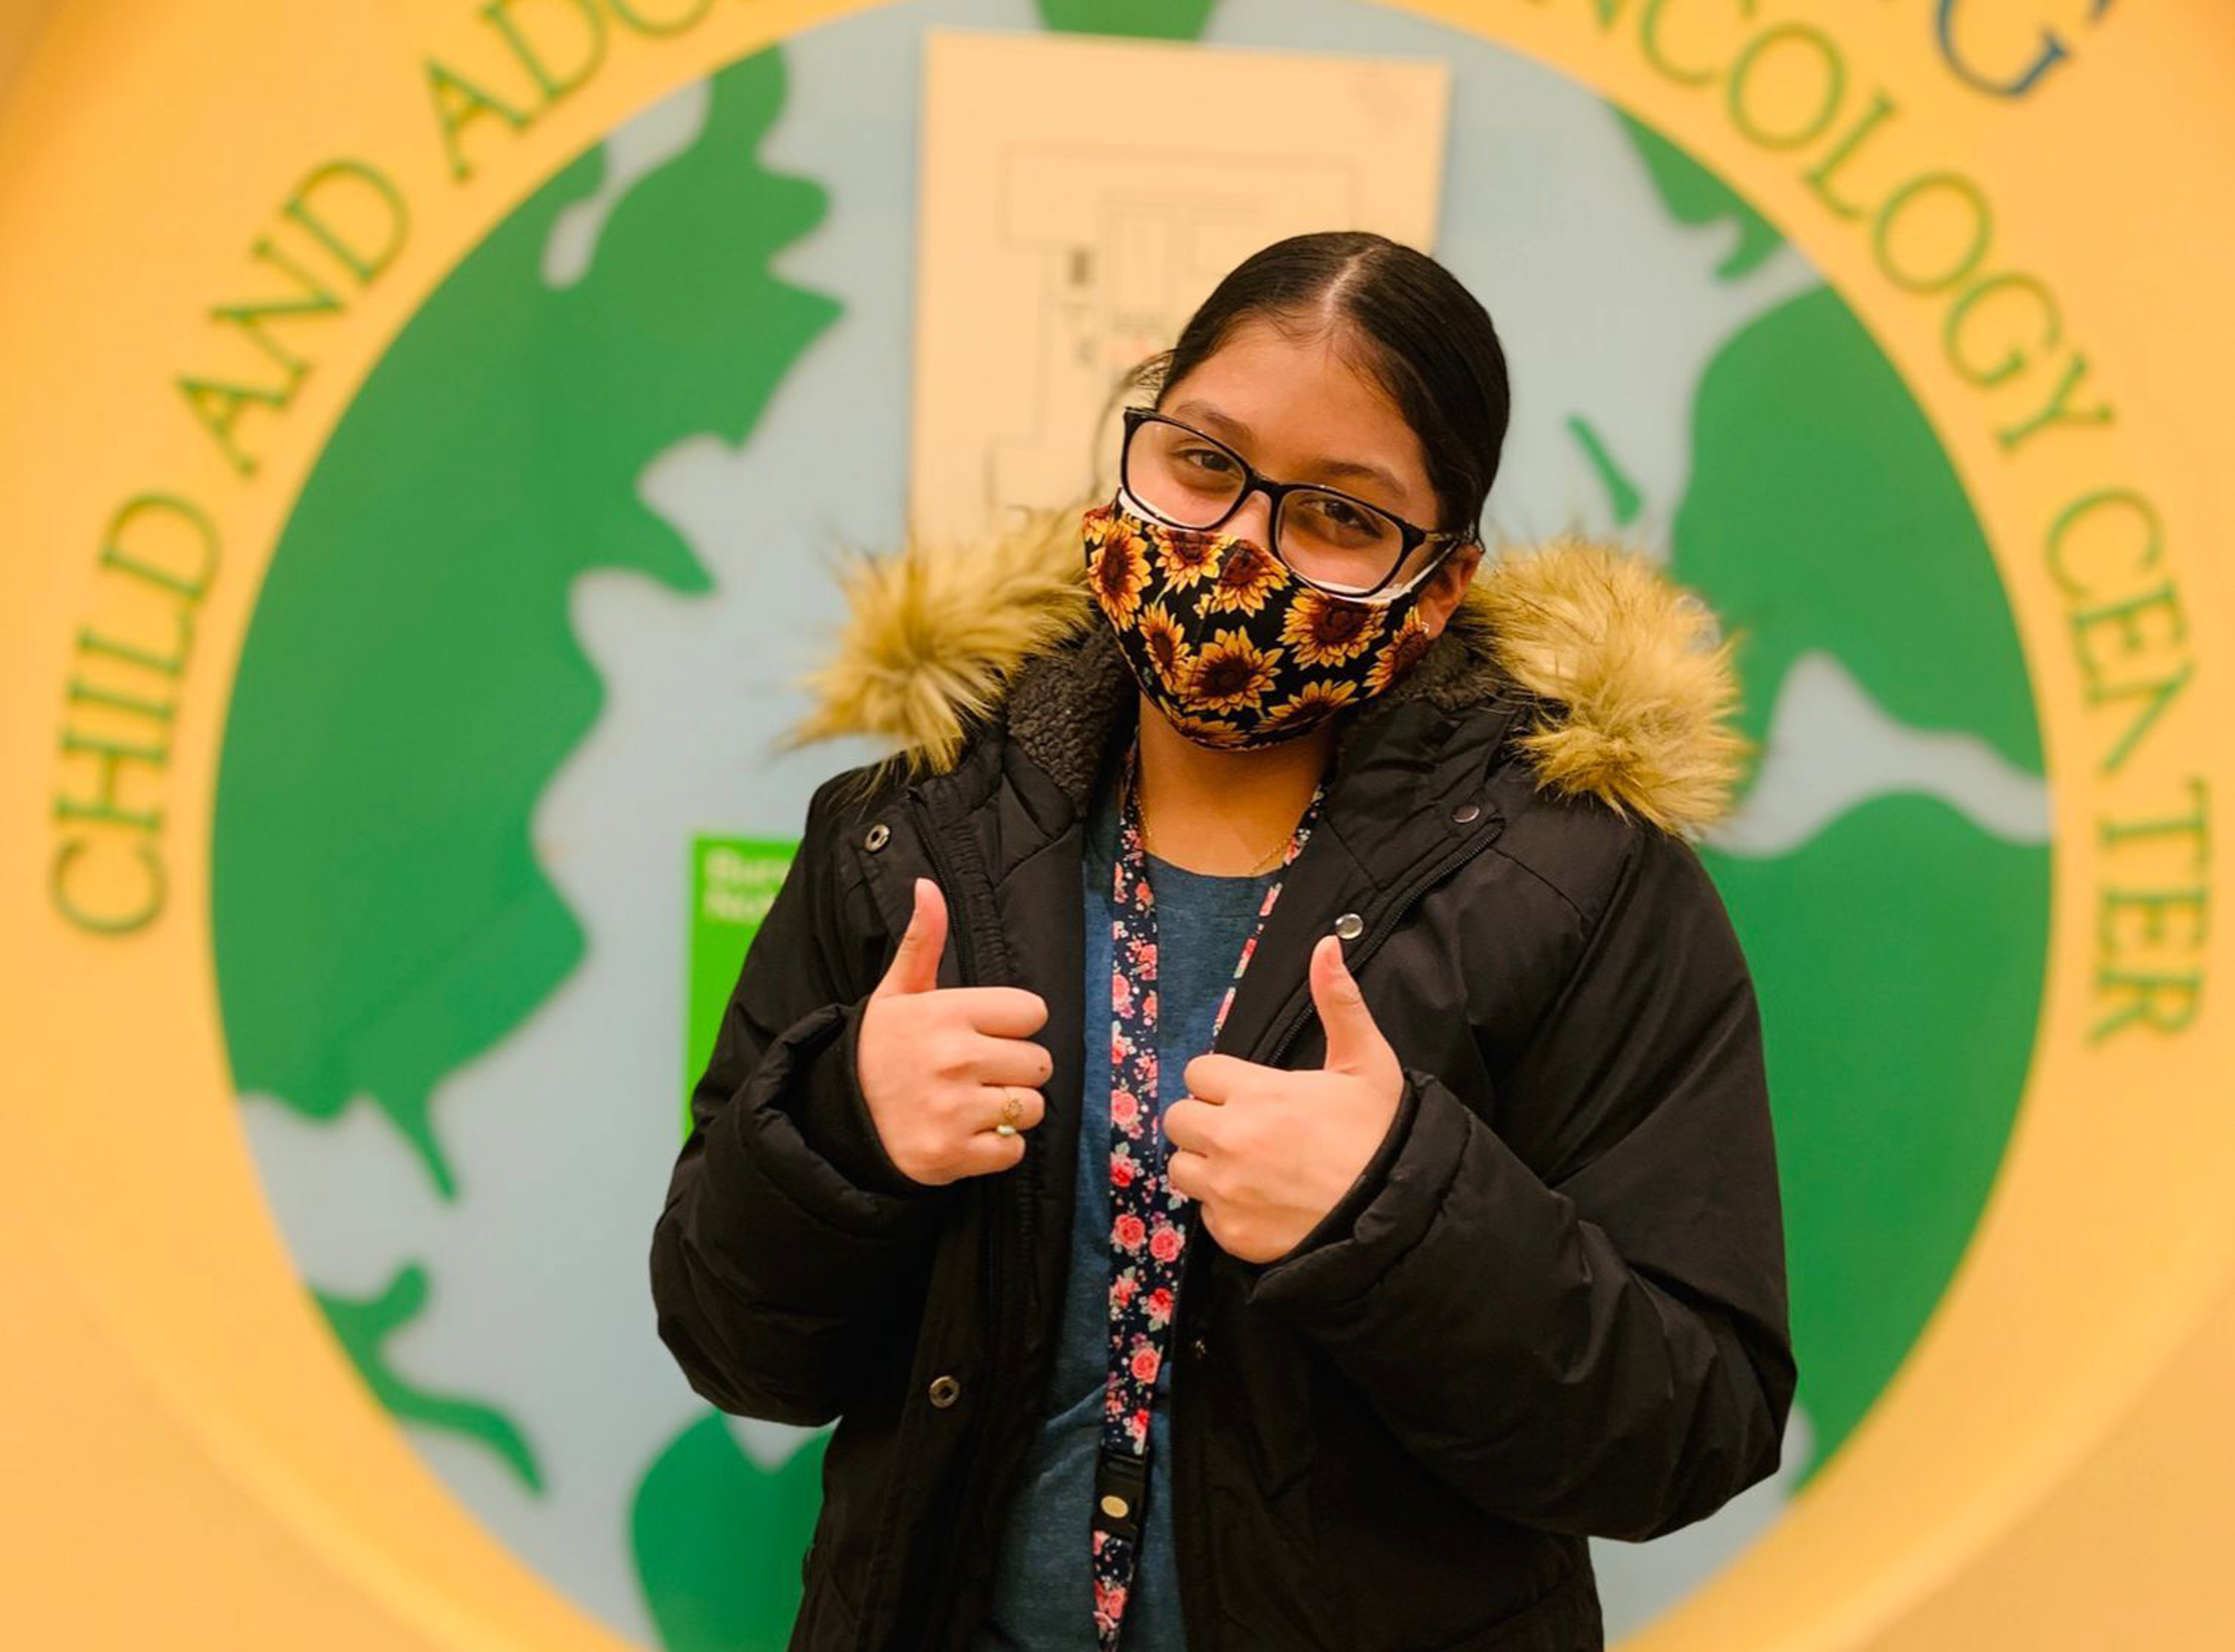 A young girl wearing a mask has two thumbs up in front of a sign.